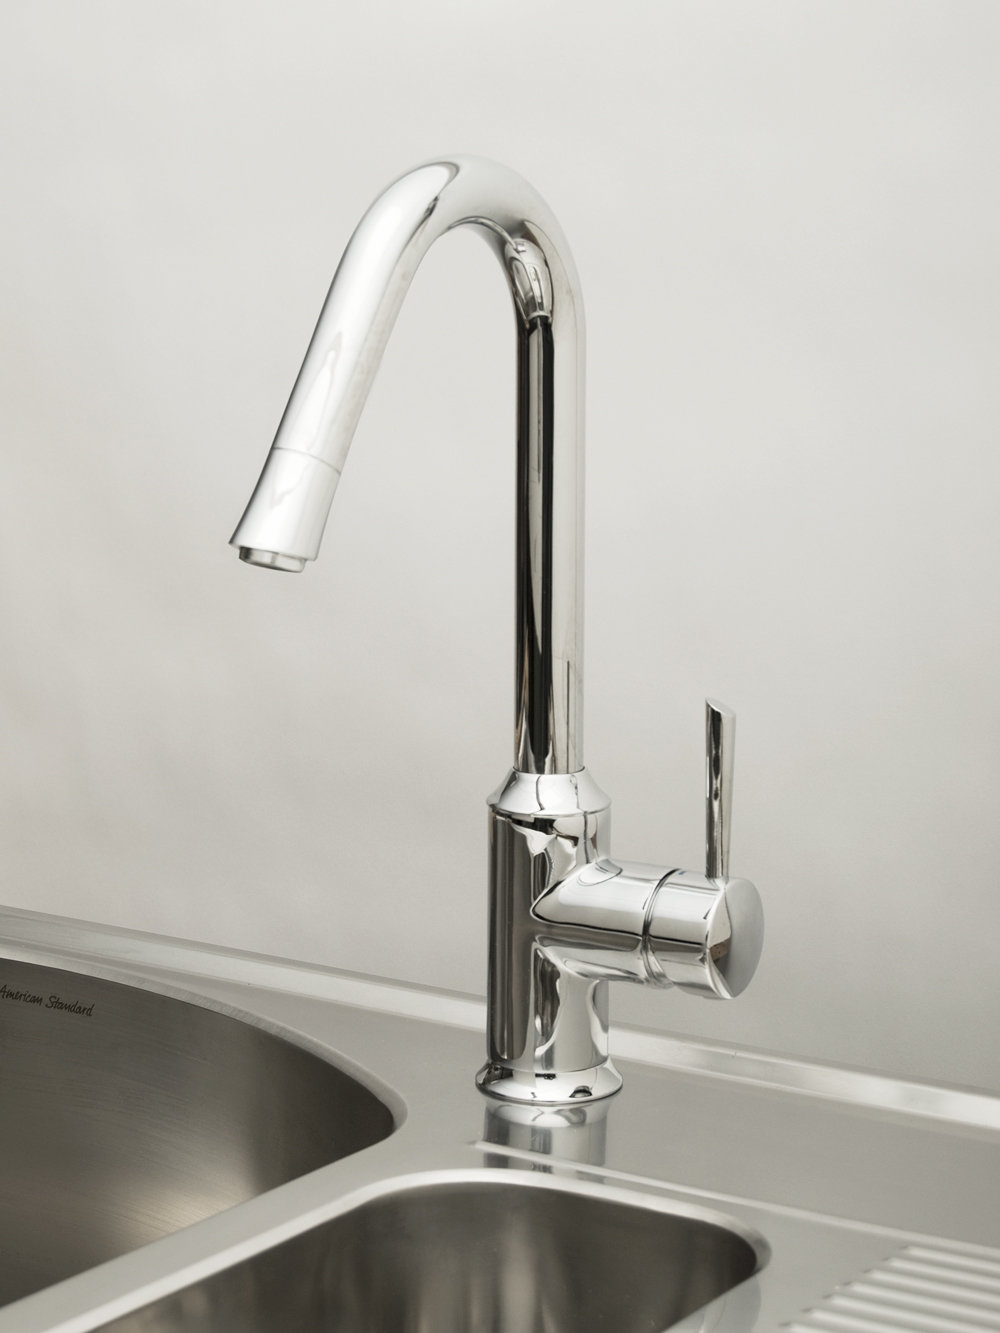 the american standard pekoe pull down kitchen faucet will keep its